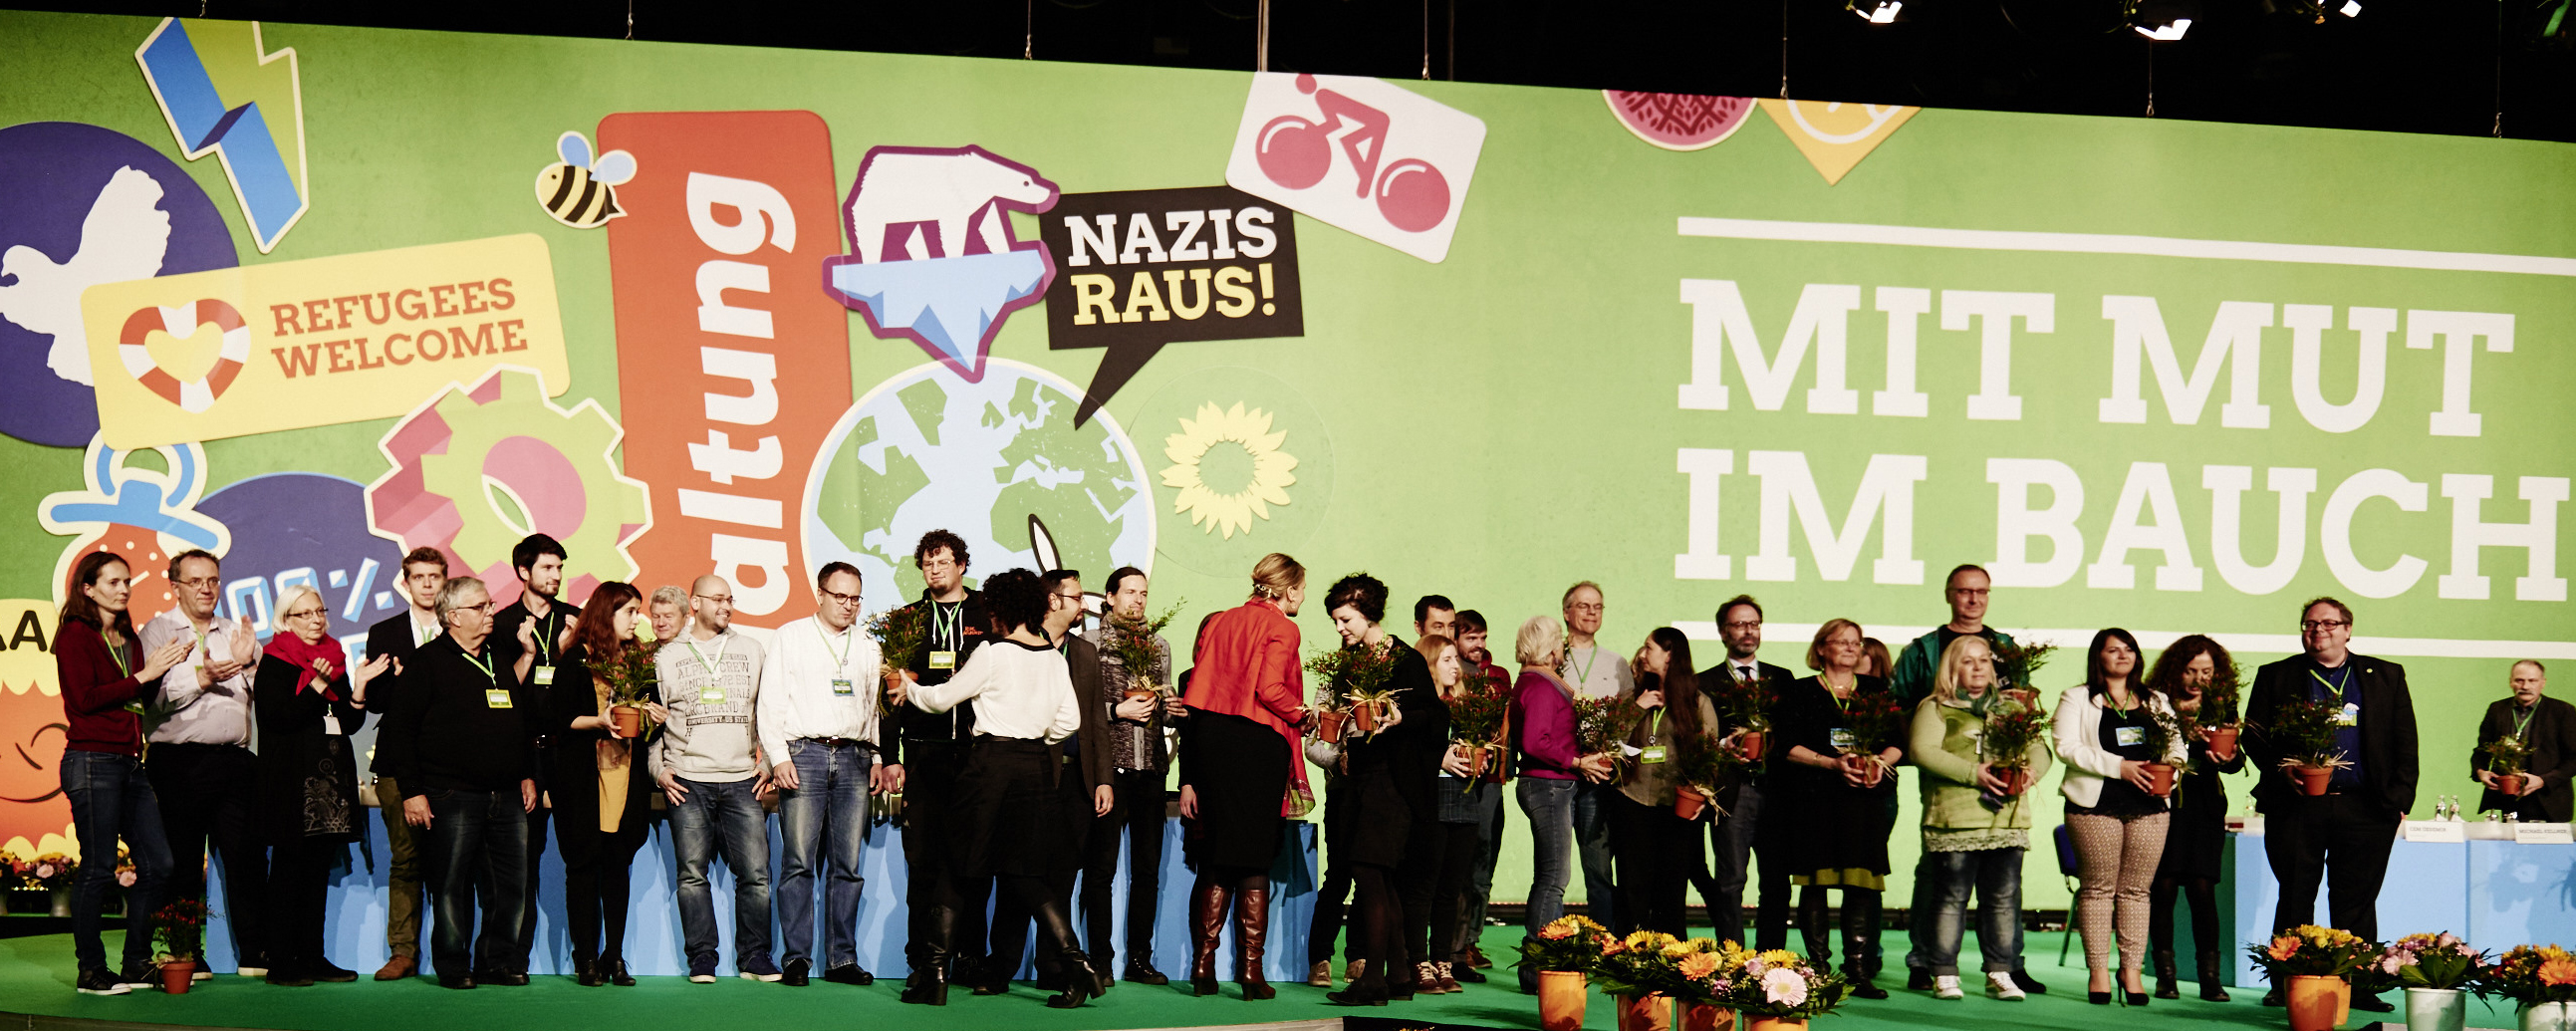 The Green Party in Germany's state governments